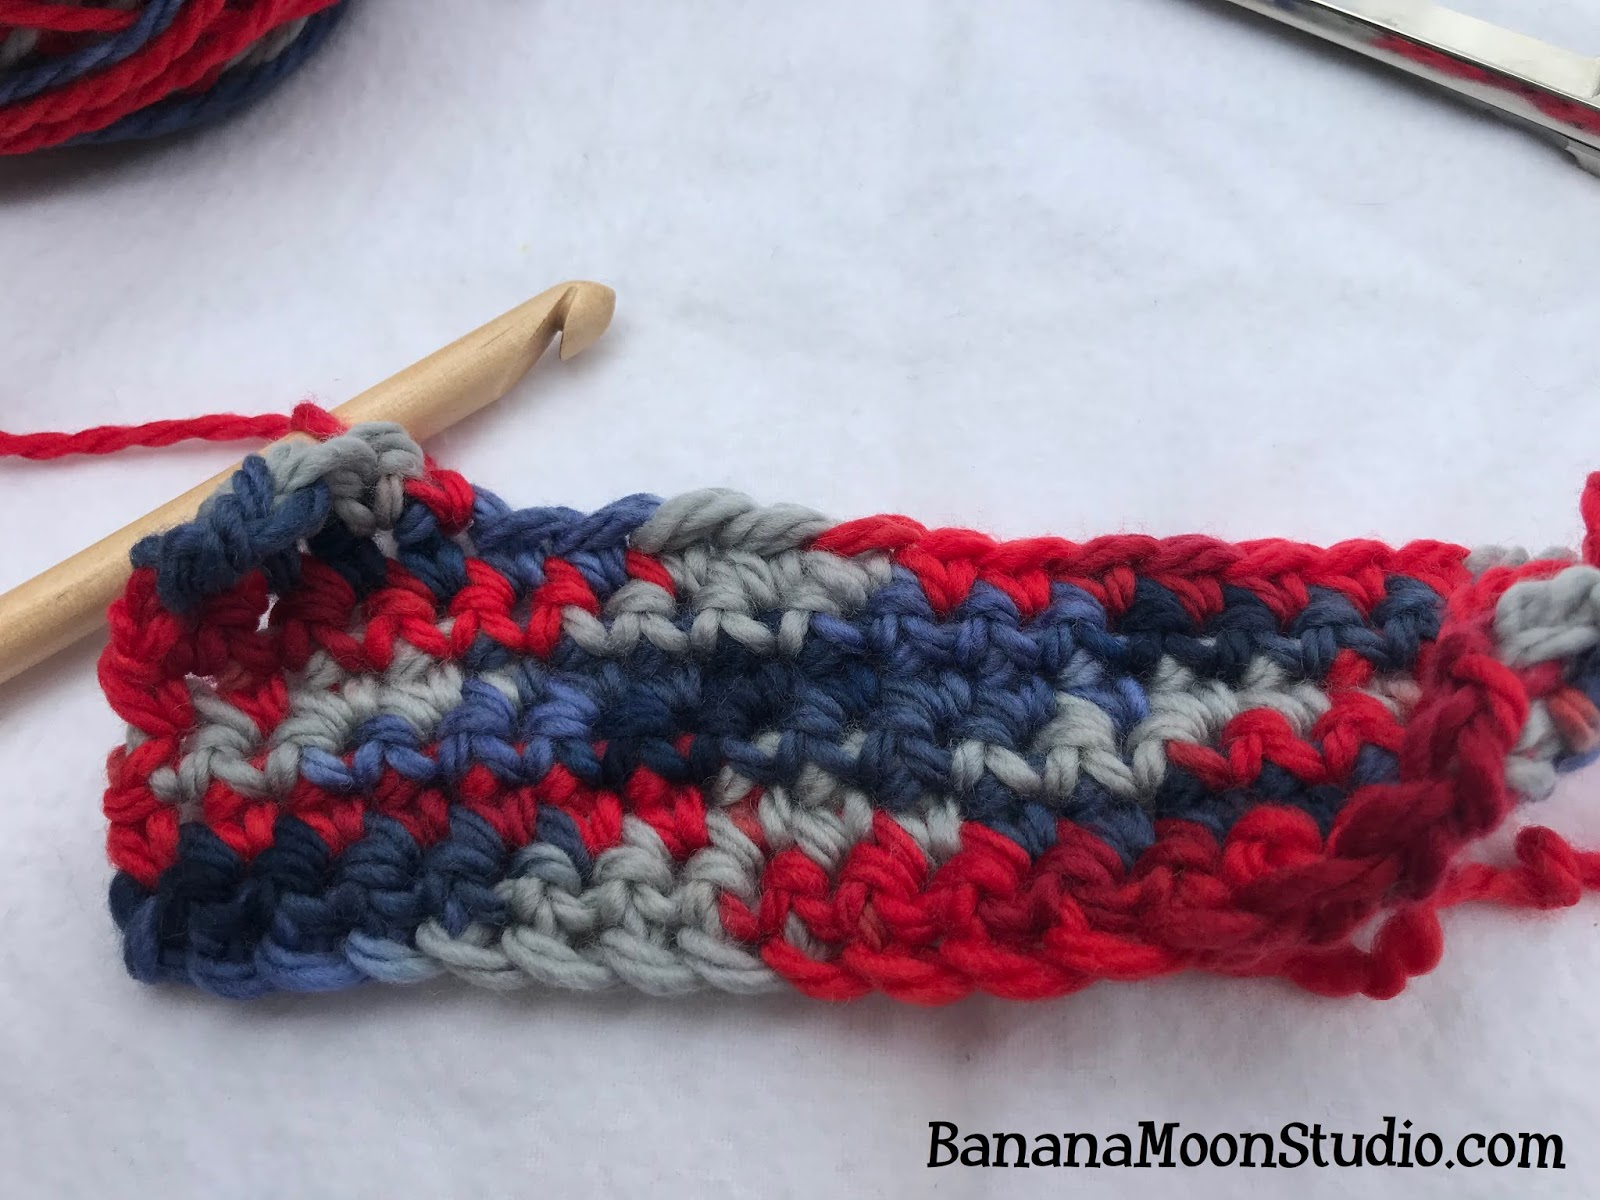 How to join in a new ball of yarn in crochet and knitting, a new method by April Garwood of Banana Moon Studio